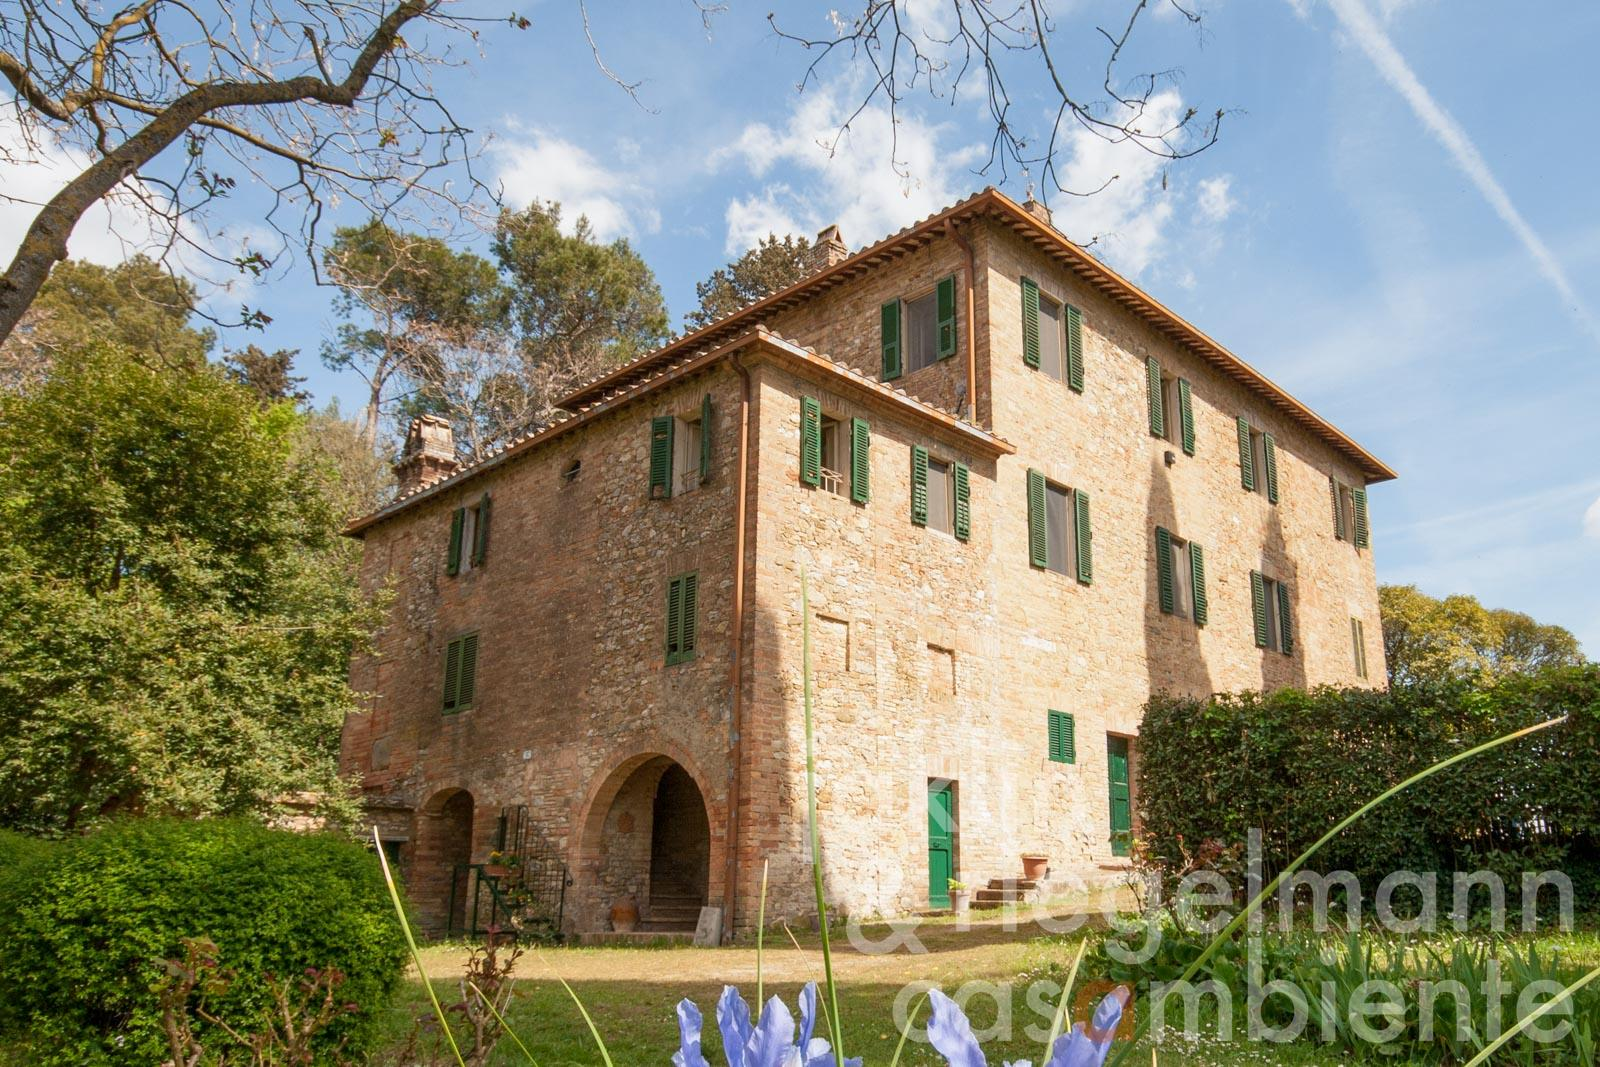 Typical Umbrian manor house with attached annex 9 km south of Perugia